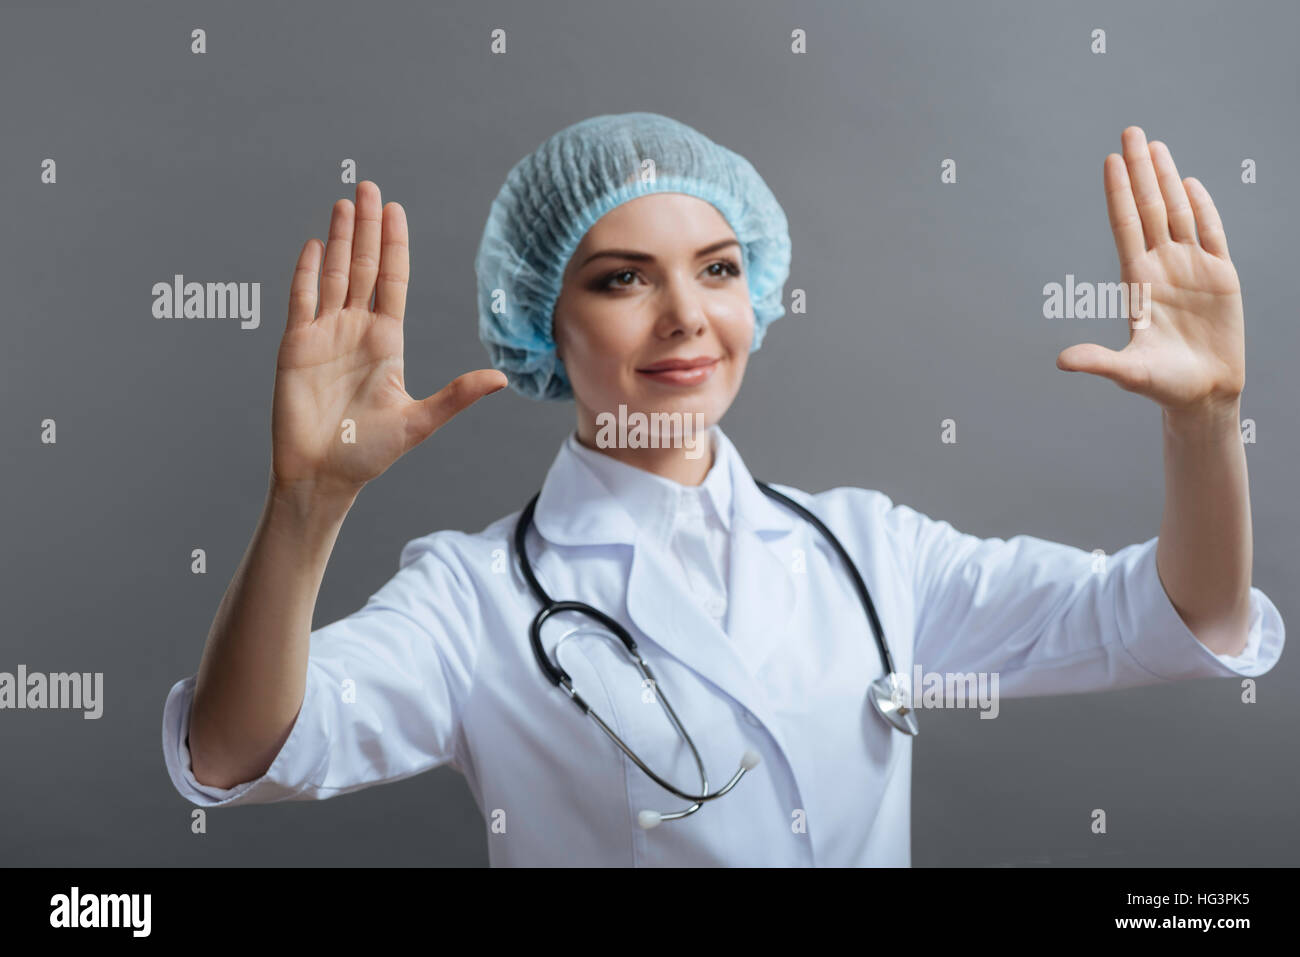 Female doctor putting hands up on grey background. - Stock Image